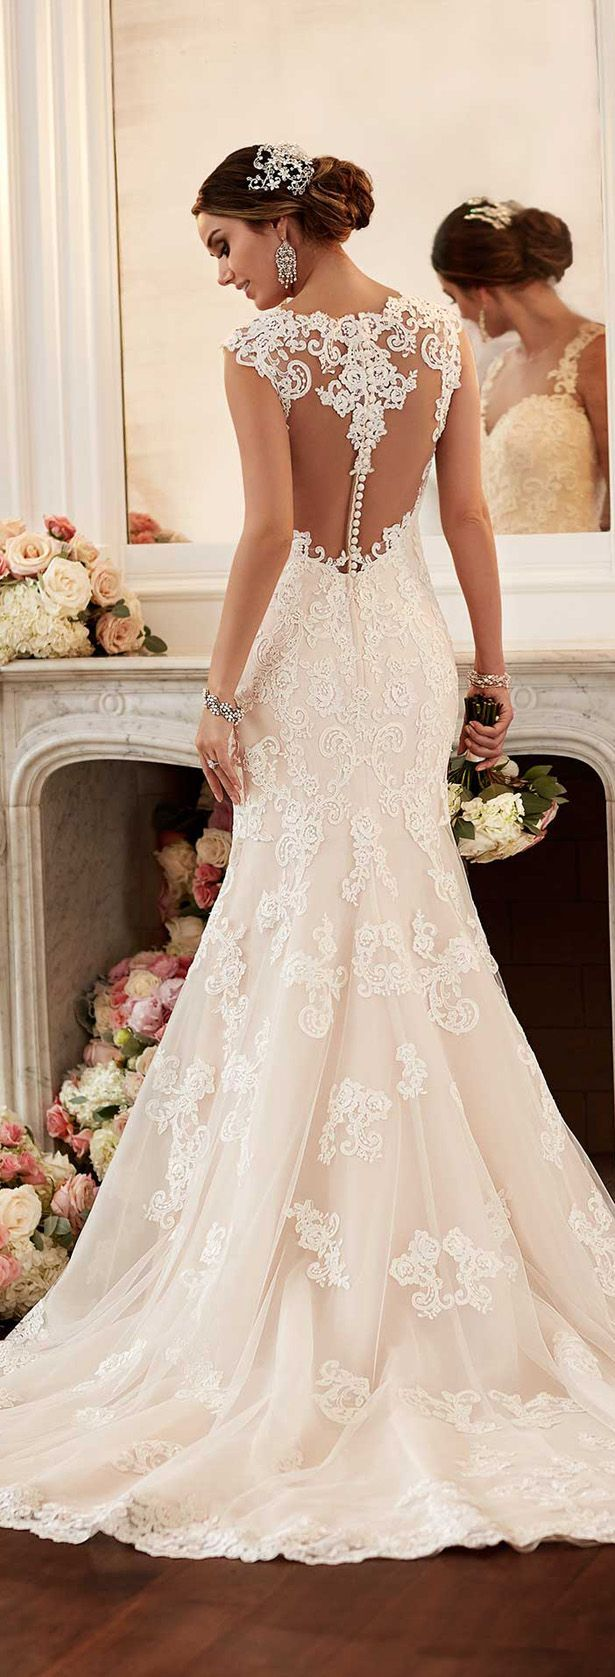 Wedding Wedding Dresses Pictures 17 best ideas about wedding dresses on pinterest weeding mesmerizing dress that would make you a fairy princess